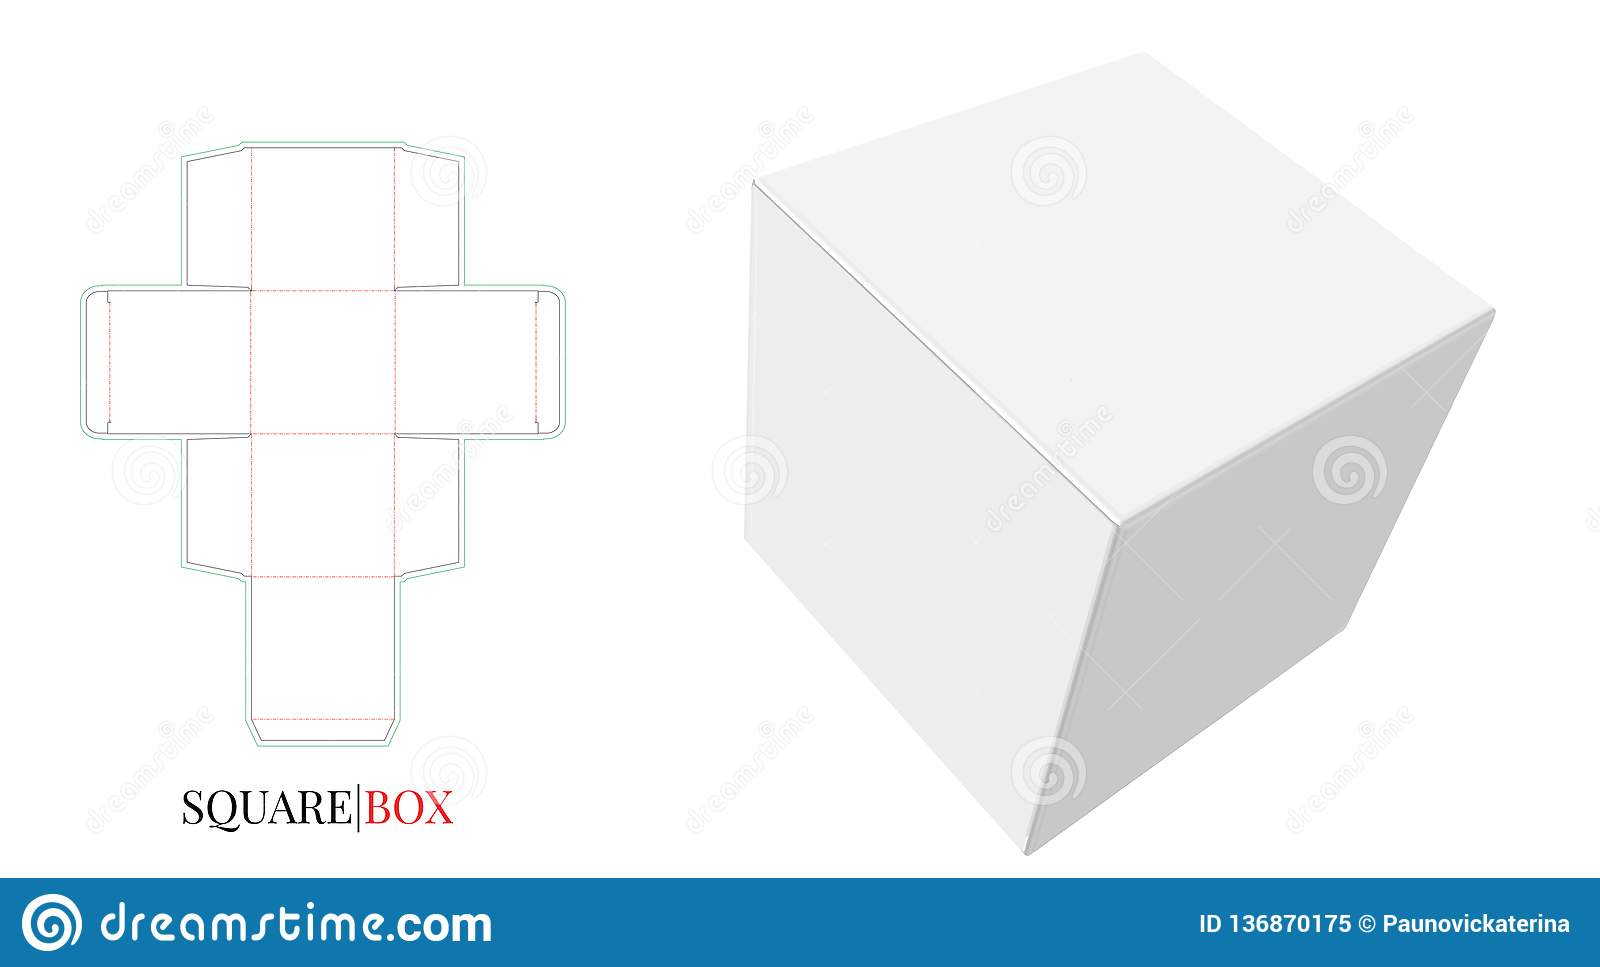 Square Box Square Box Template With Die Cut Lines Vector With Die Cut